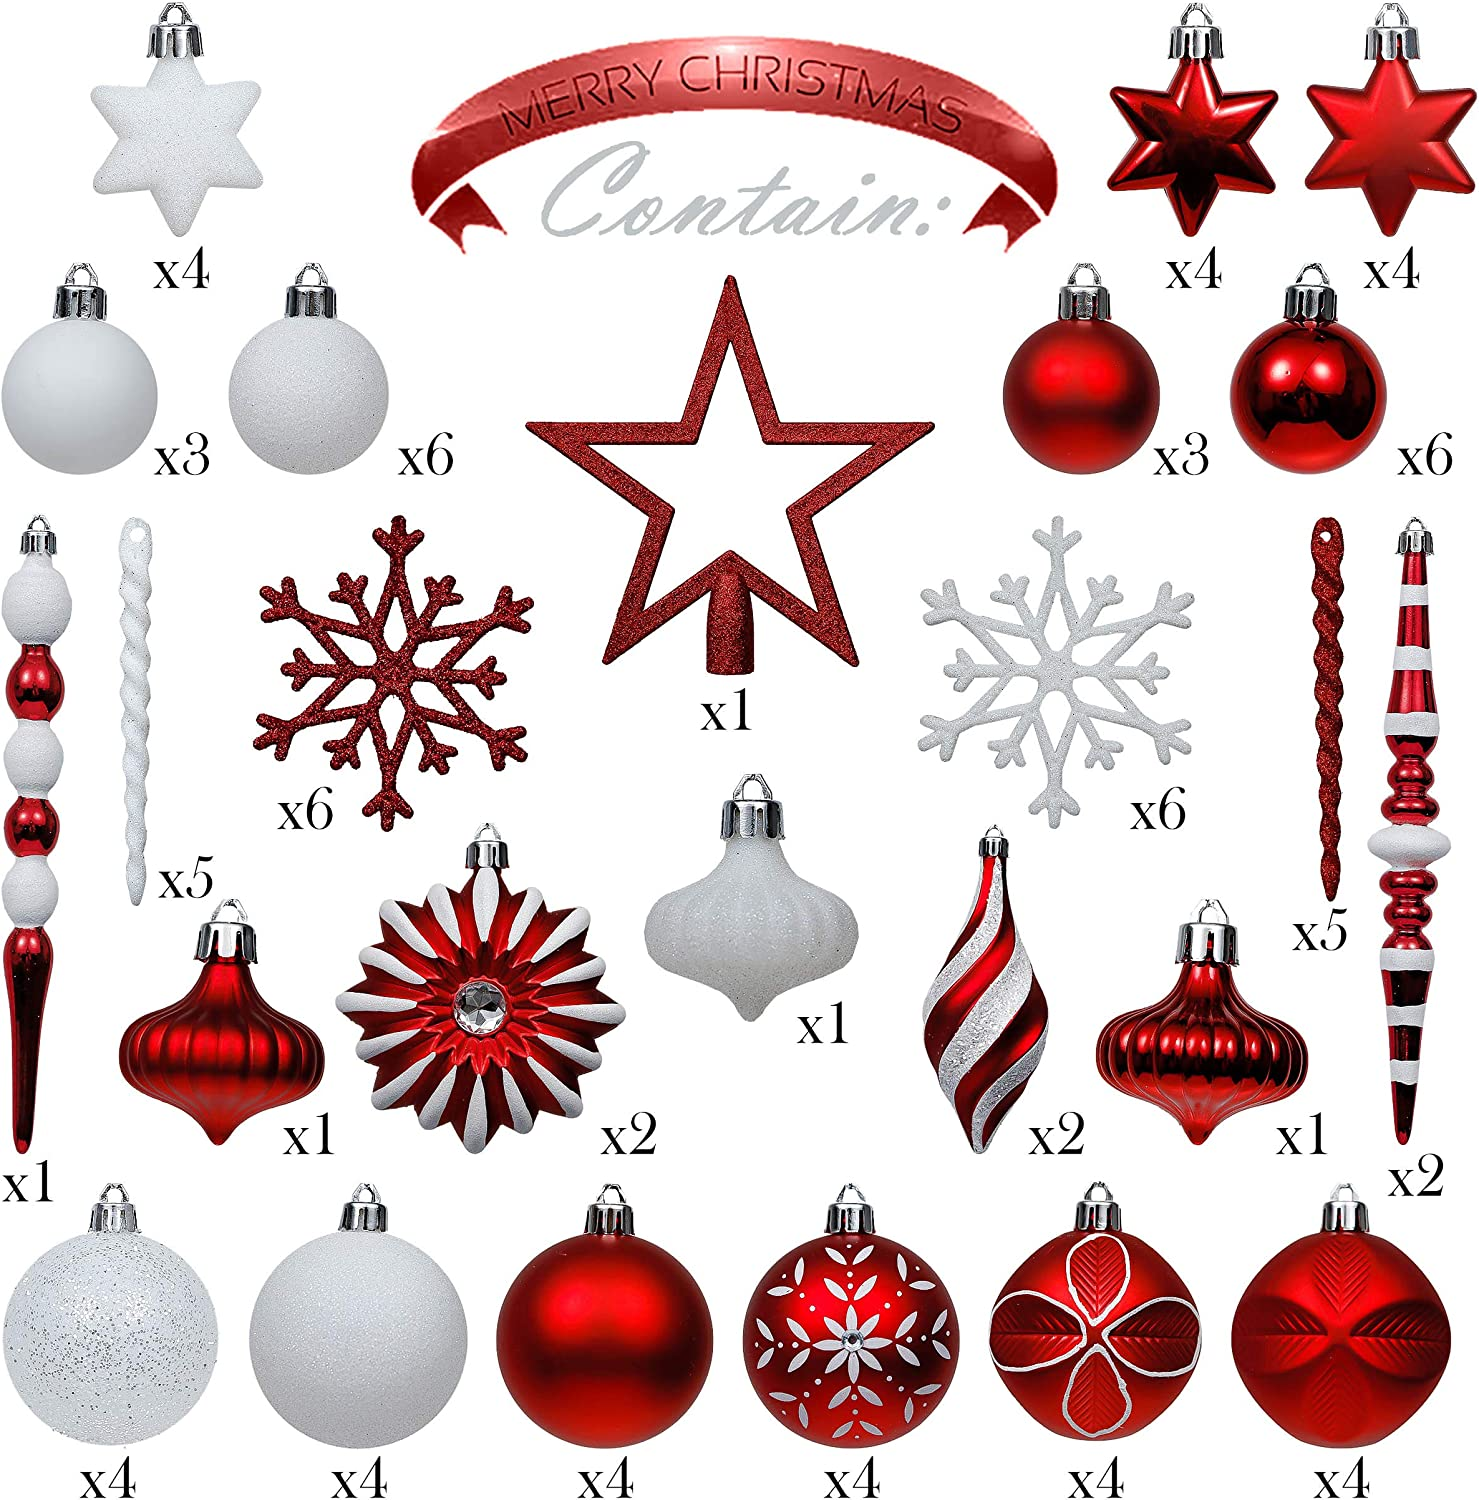 Themed with Tree Skirt Not Included Valery Madelyn 100ct Traditional Shatterproof Christmas Ball Ornaments Red and White with Tree Topper Christmas Tree Ornaments Decorations Assorted Bulk